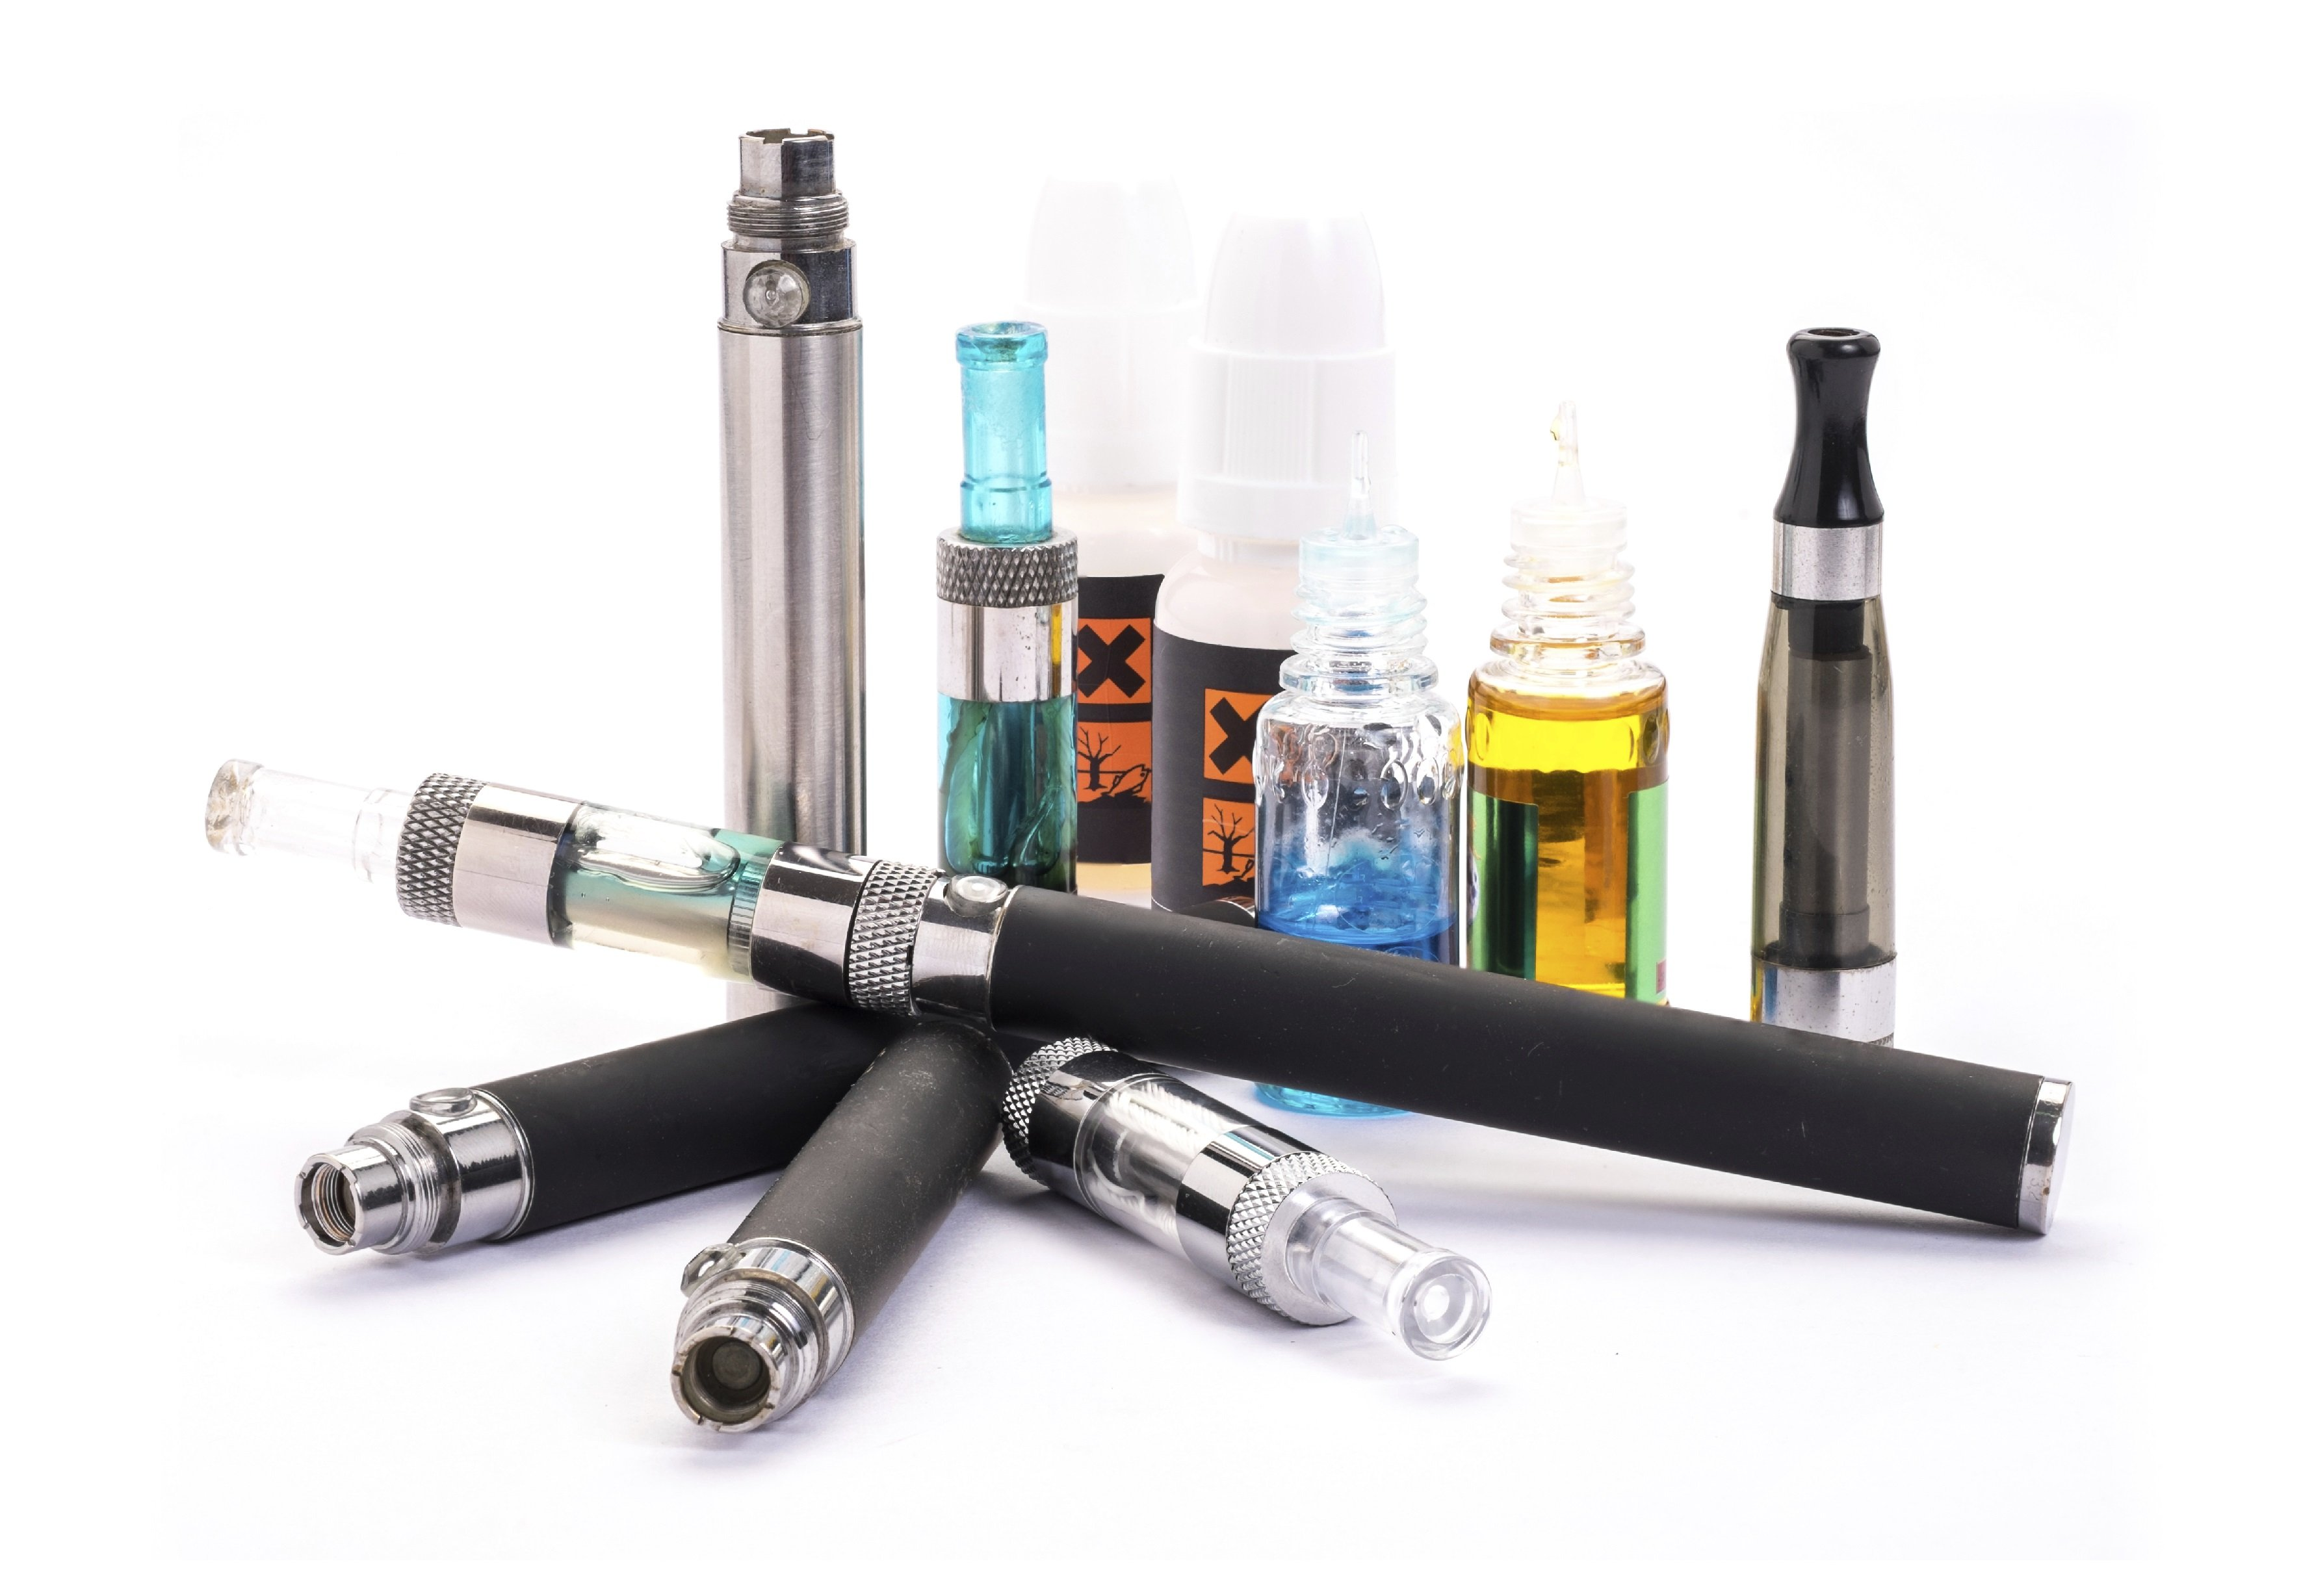 Stack of electronic cigarettes and refill fluid representing their role in smoking and health insurance